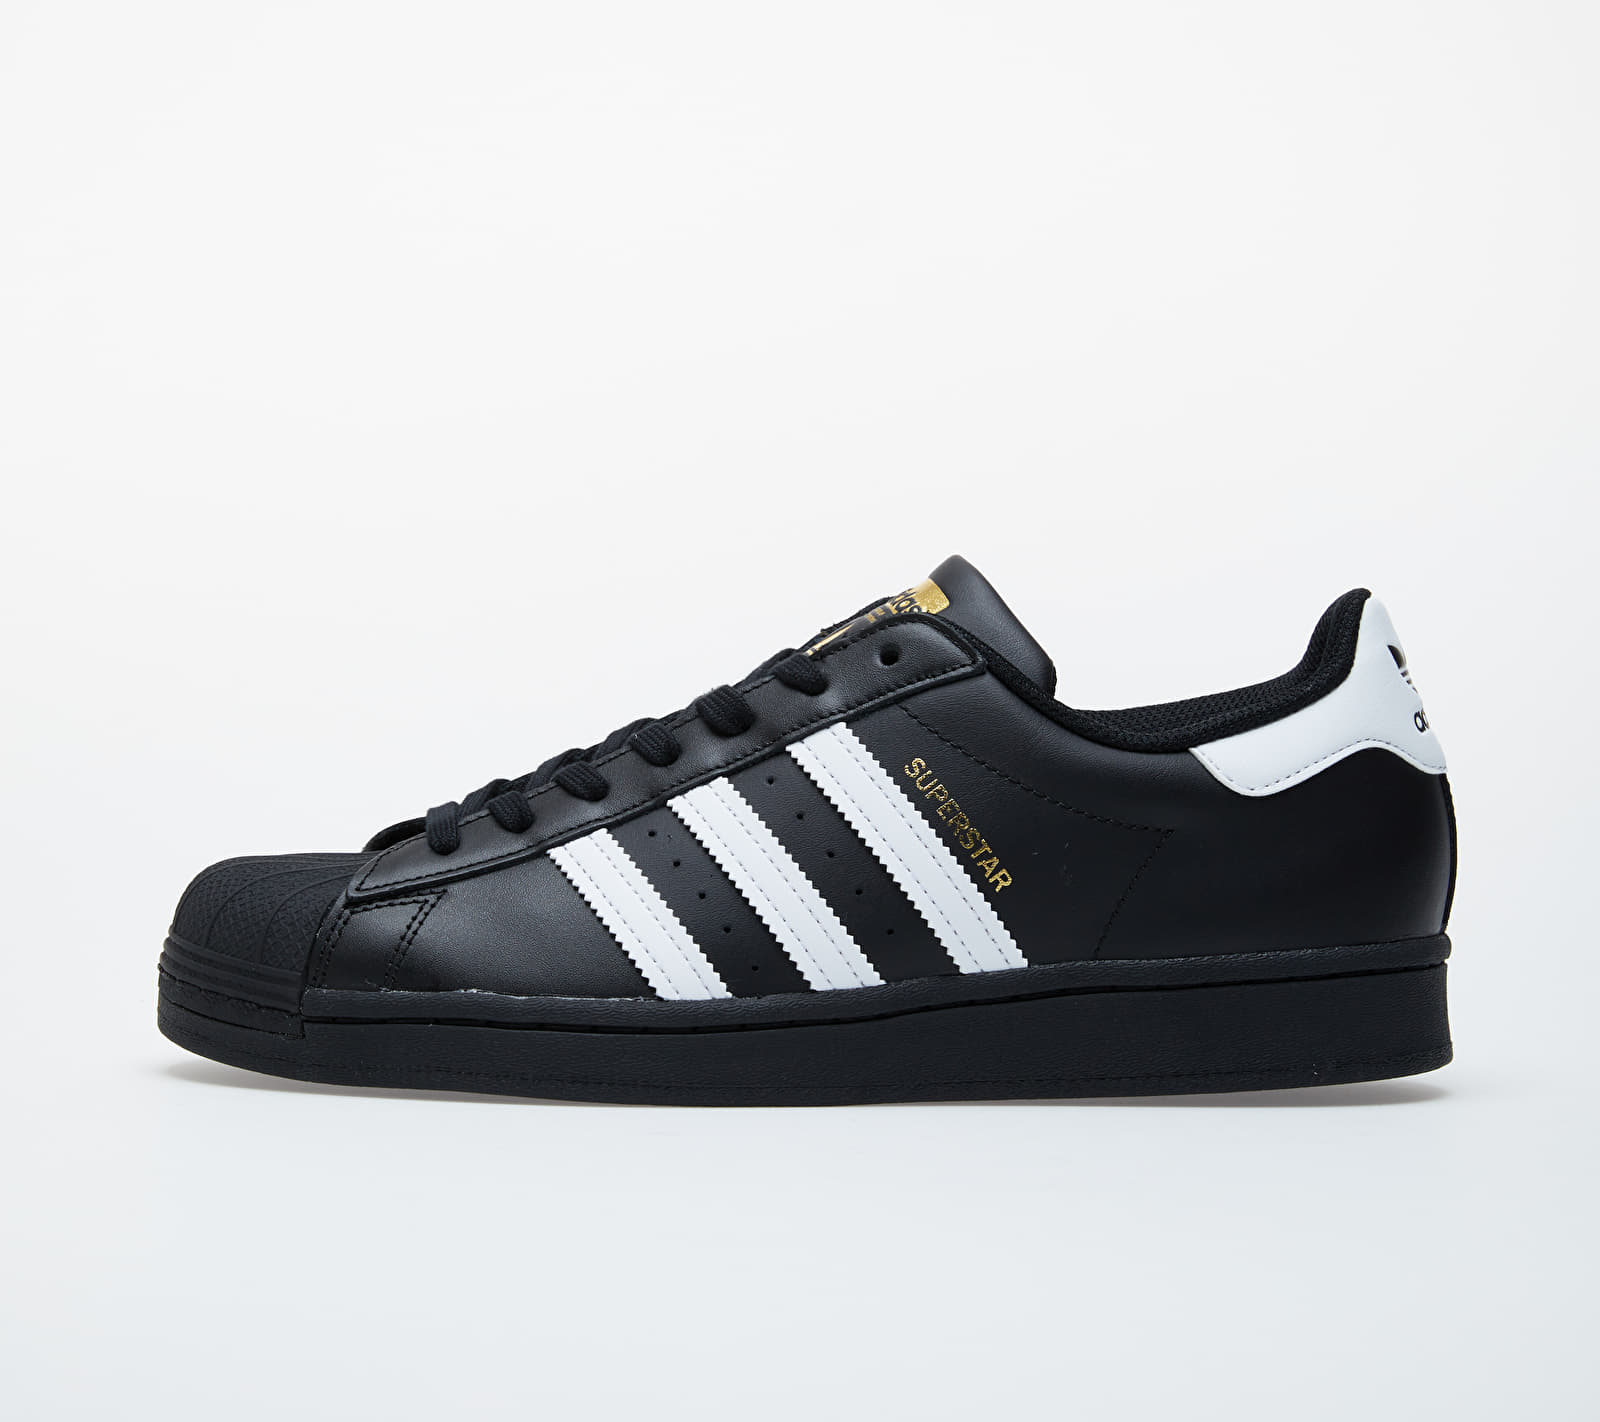 adidas Superstar Core Black/ Ftw White/ Core Black EUR 47 1/3